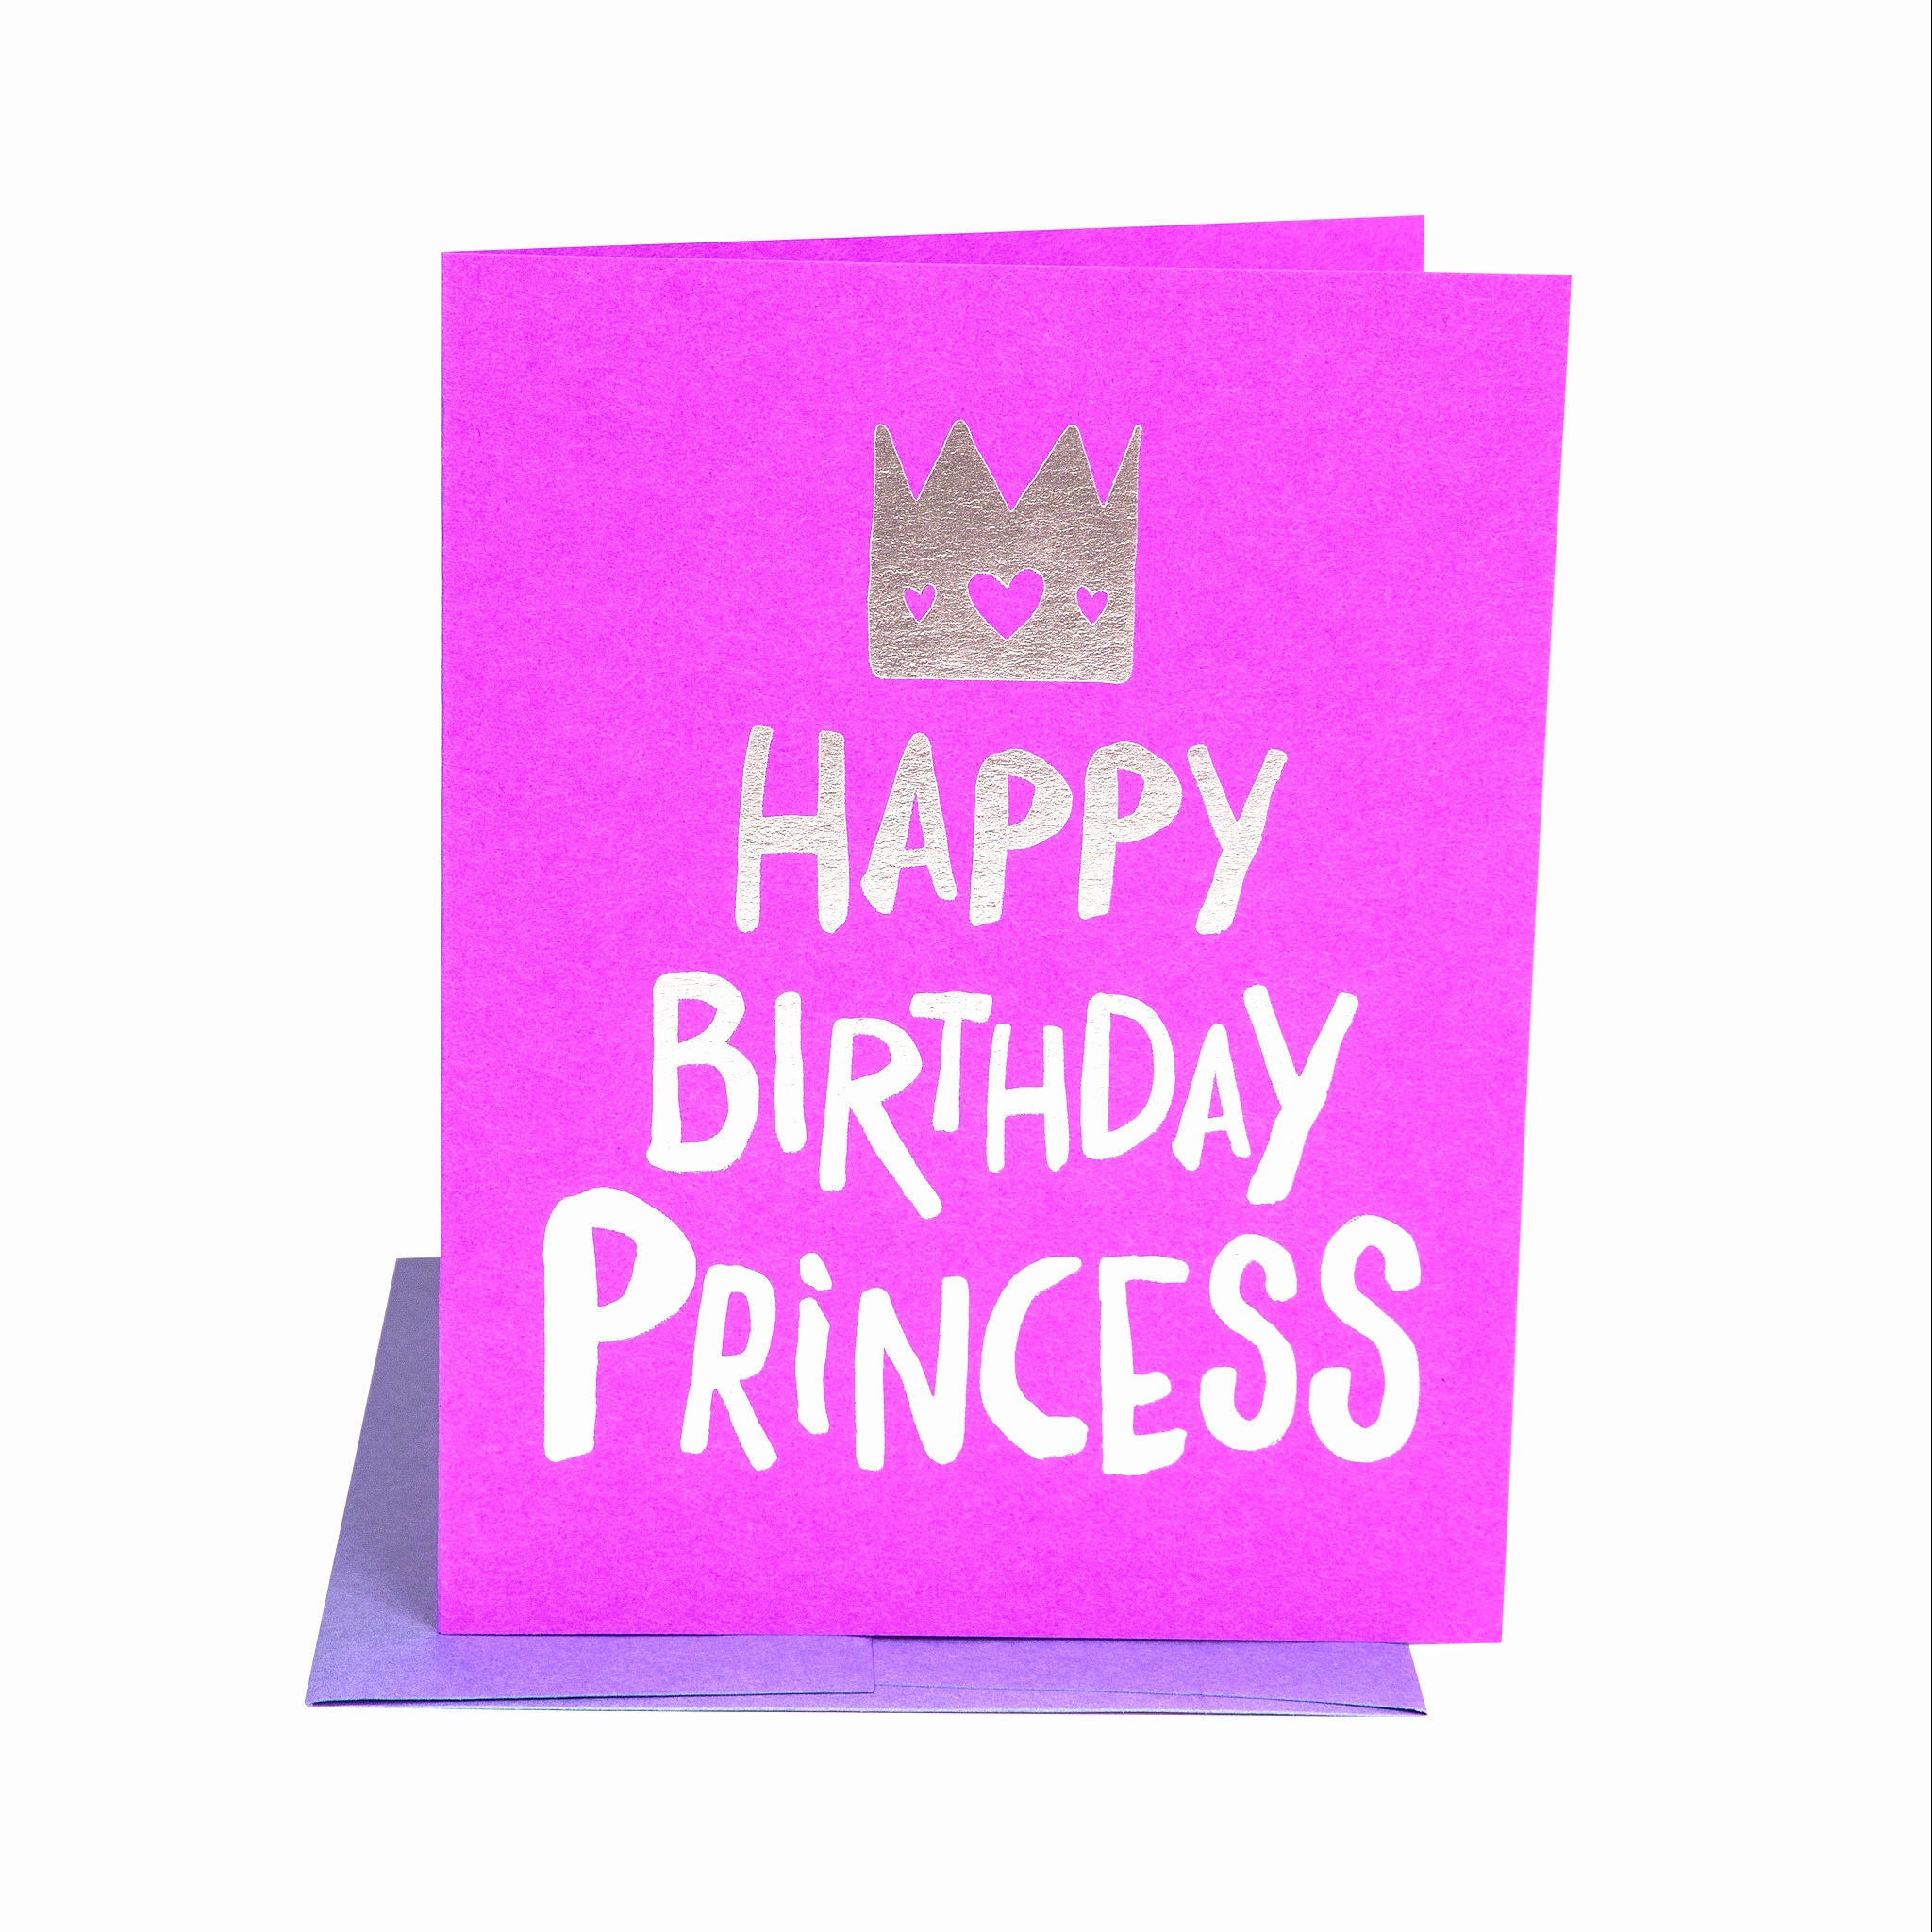 happy birthday princess wallpaper ; advance-birthday-wishes-cards-luxury-happy-birthday-princess-messages-quotes-amp-wallpapers-of-advance-birthday-wishes-cards